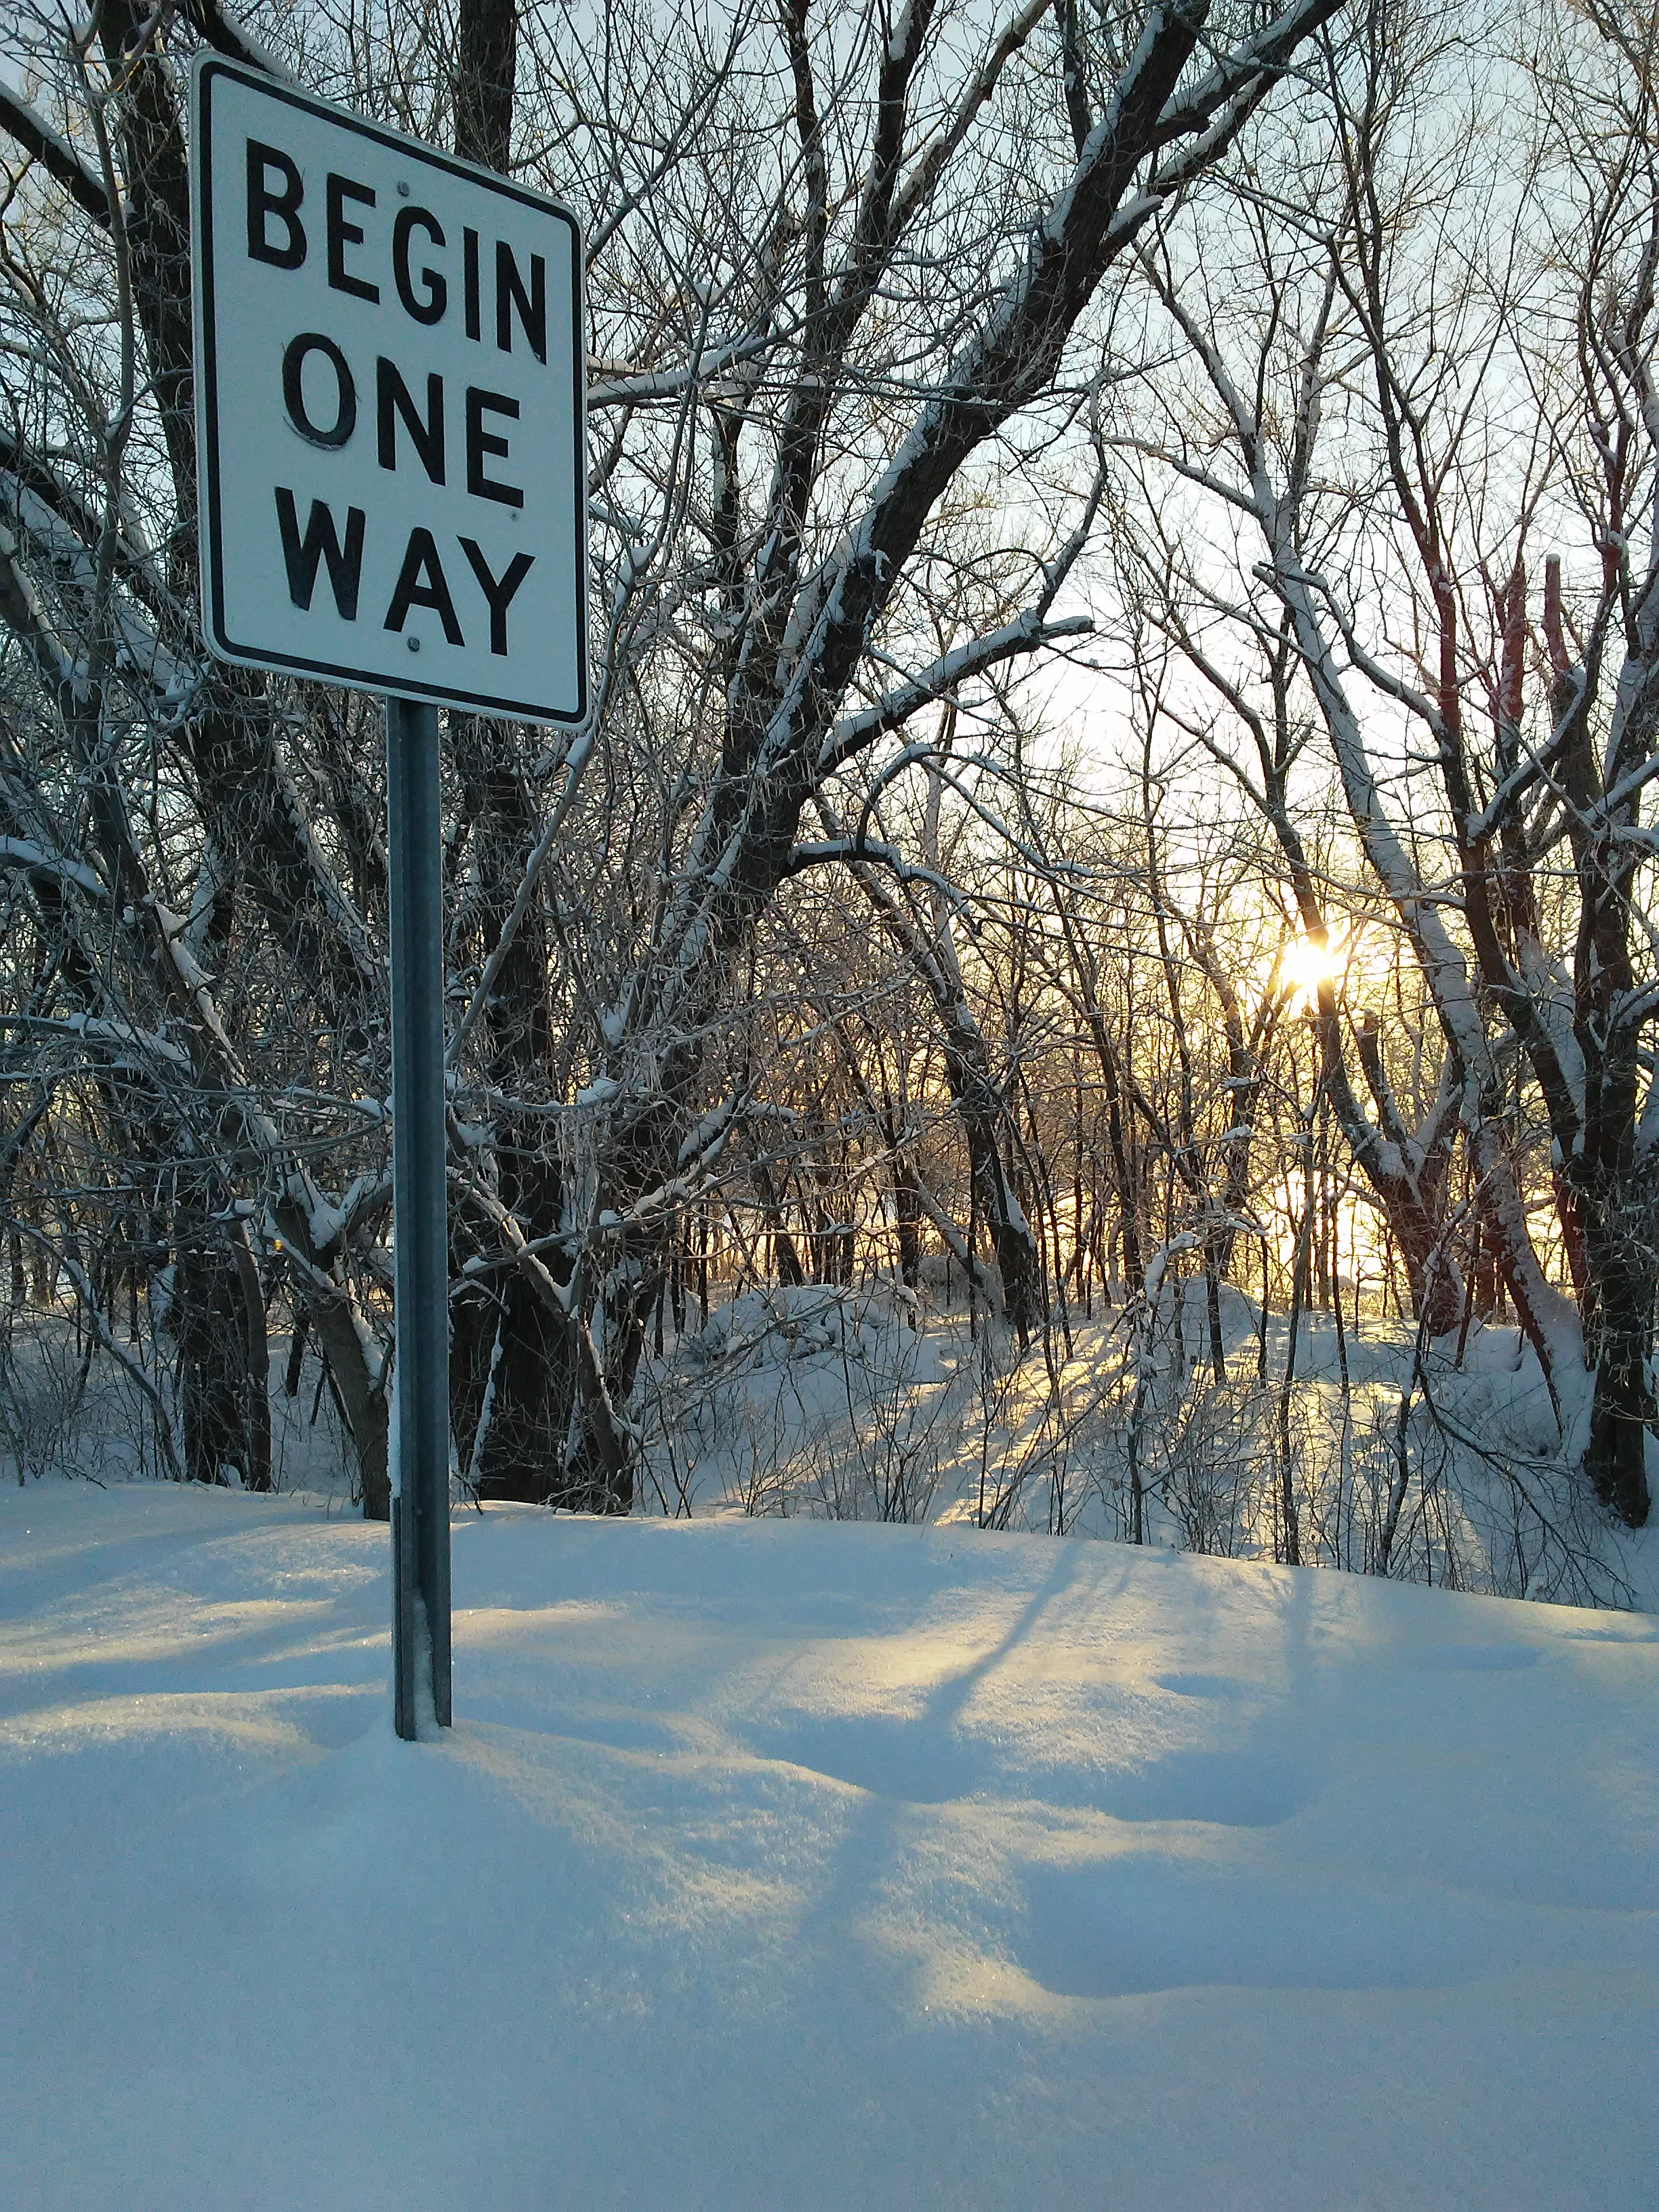 """Begin One Way"" street sign and sunrise behind snow covered trees"